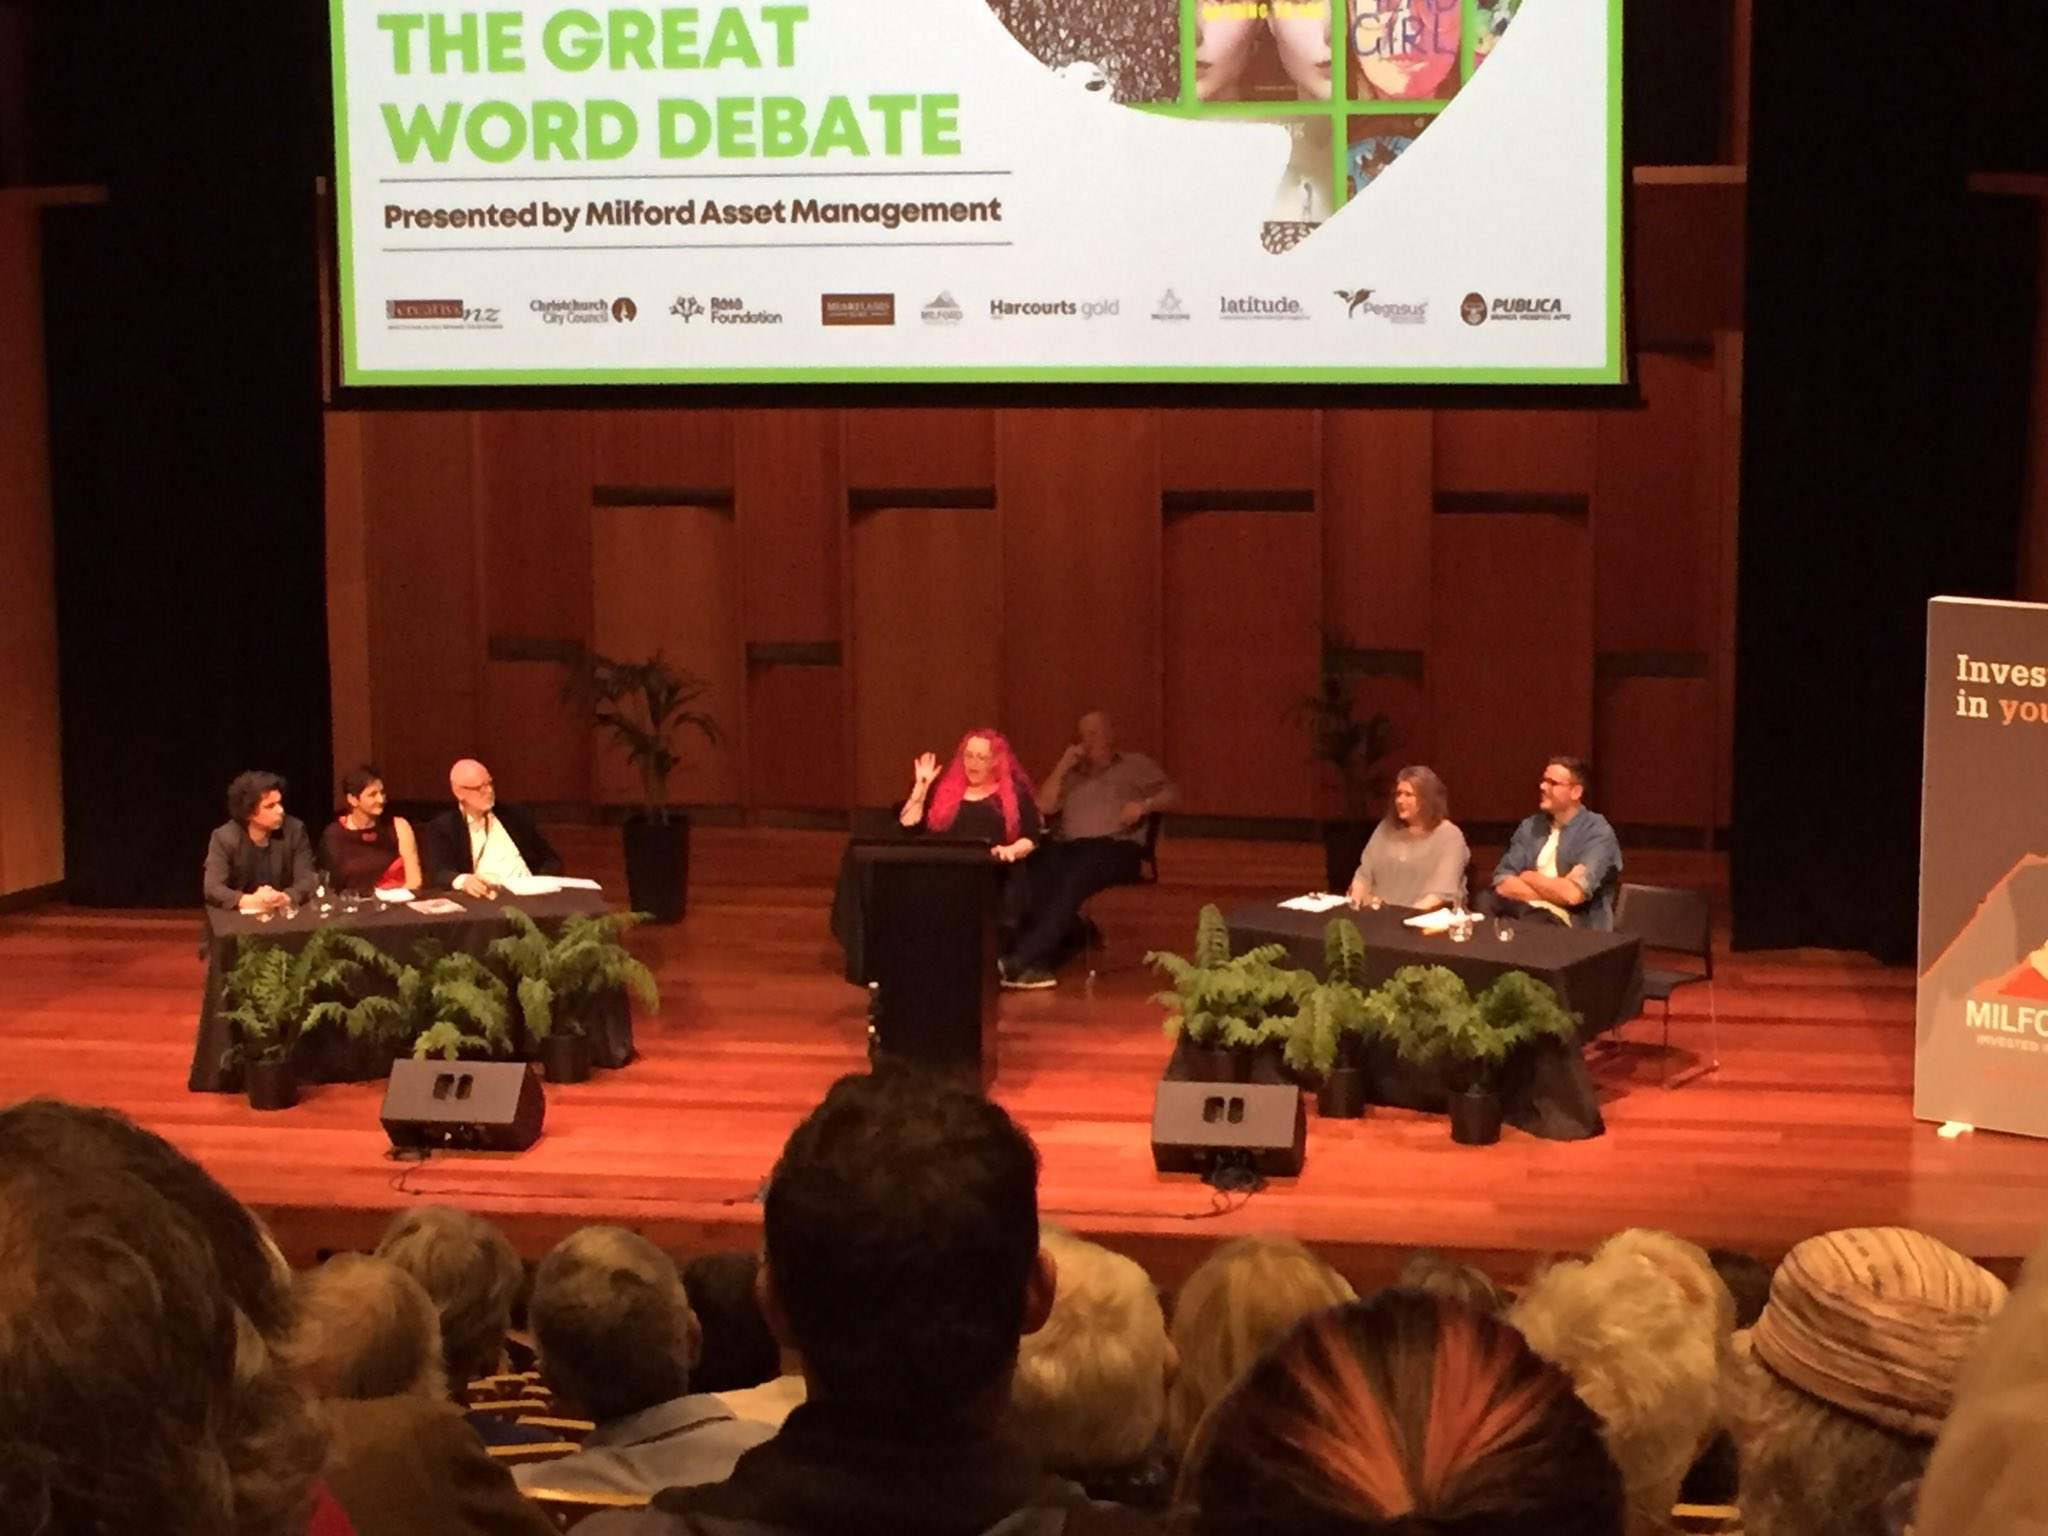 The Great Word Debate. Image supplied.